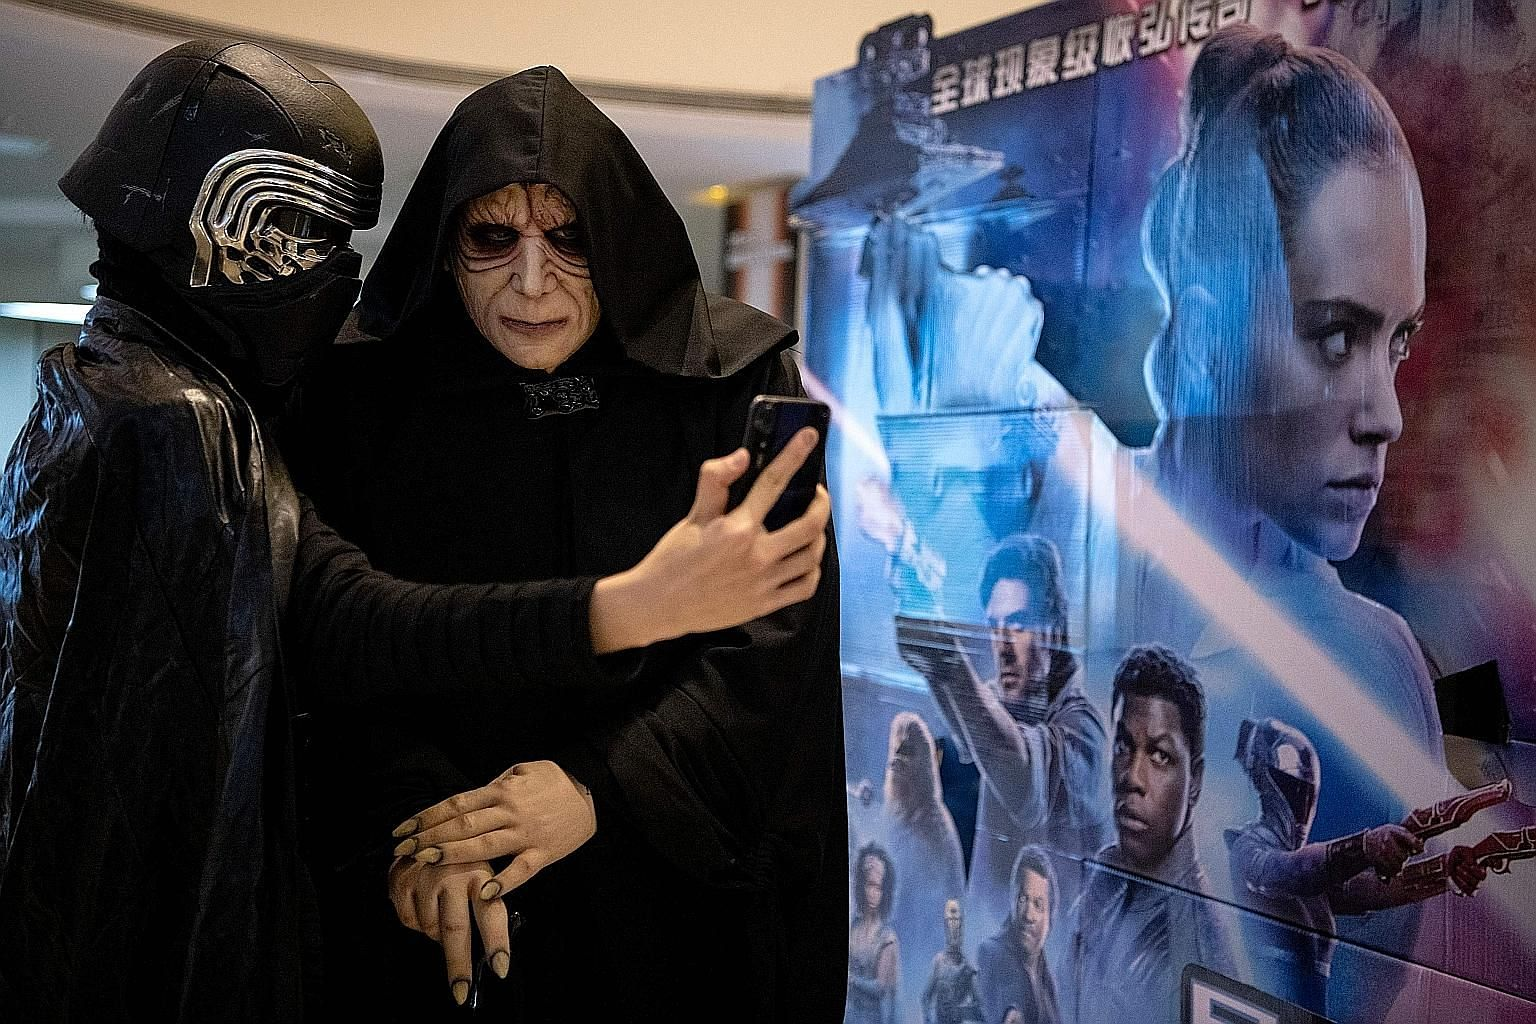 Moviegoers in Beijing dressed as Star Wars characters taking a wefie, as the latest instalment in the Skywalker saga opened worldwide this month. The writer says the success of the series has obviated a lot of its original virtues, and that much of t